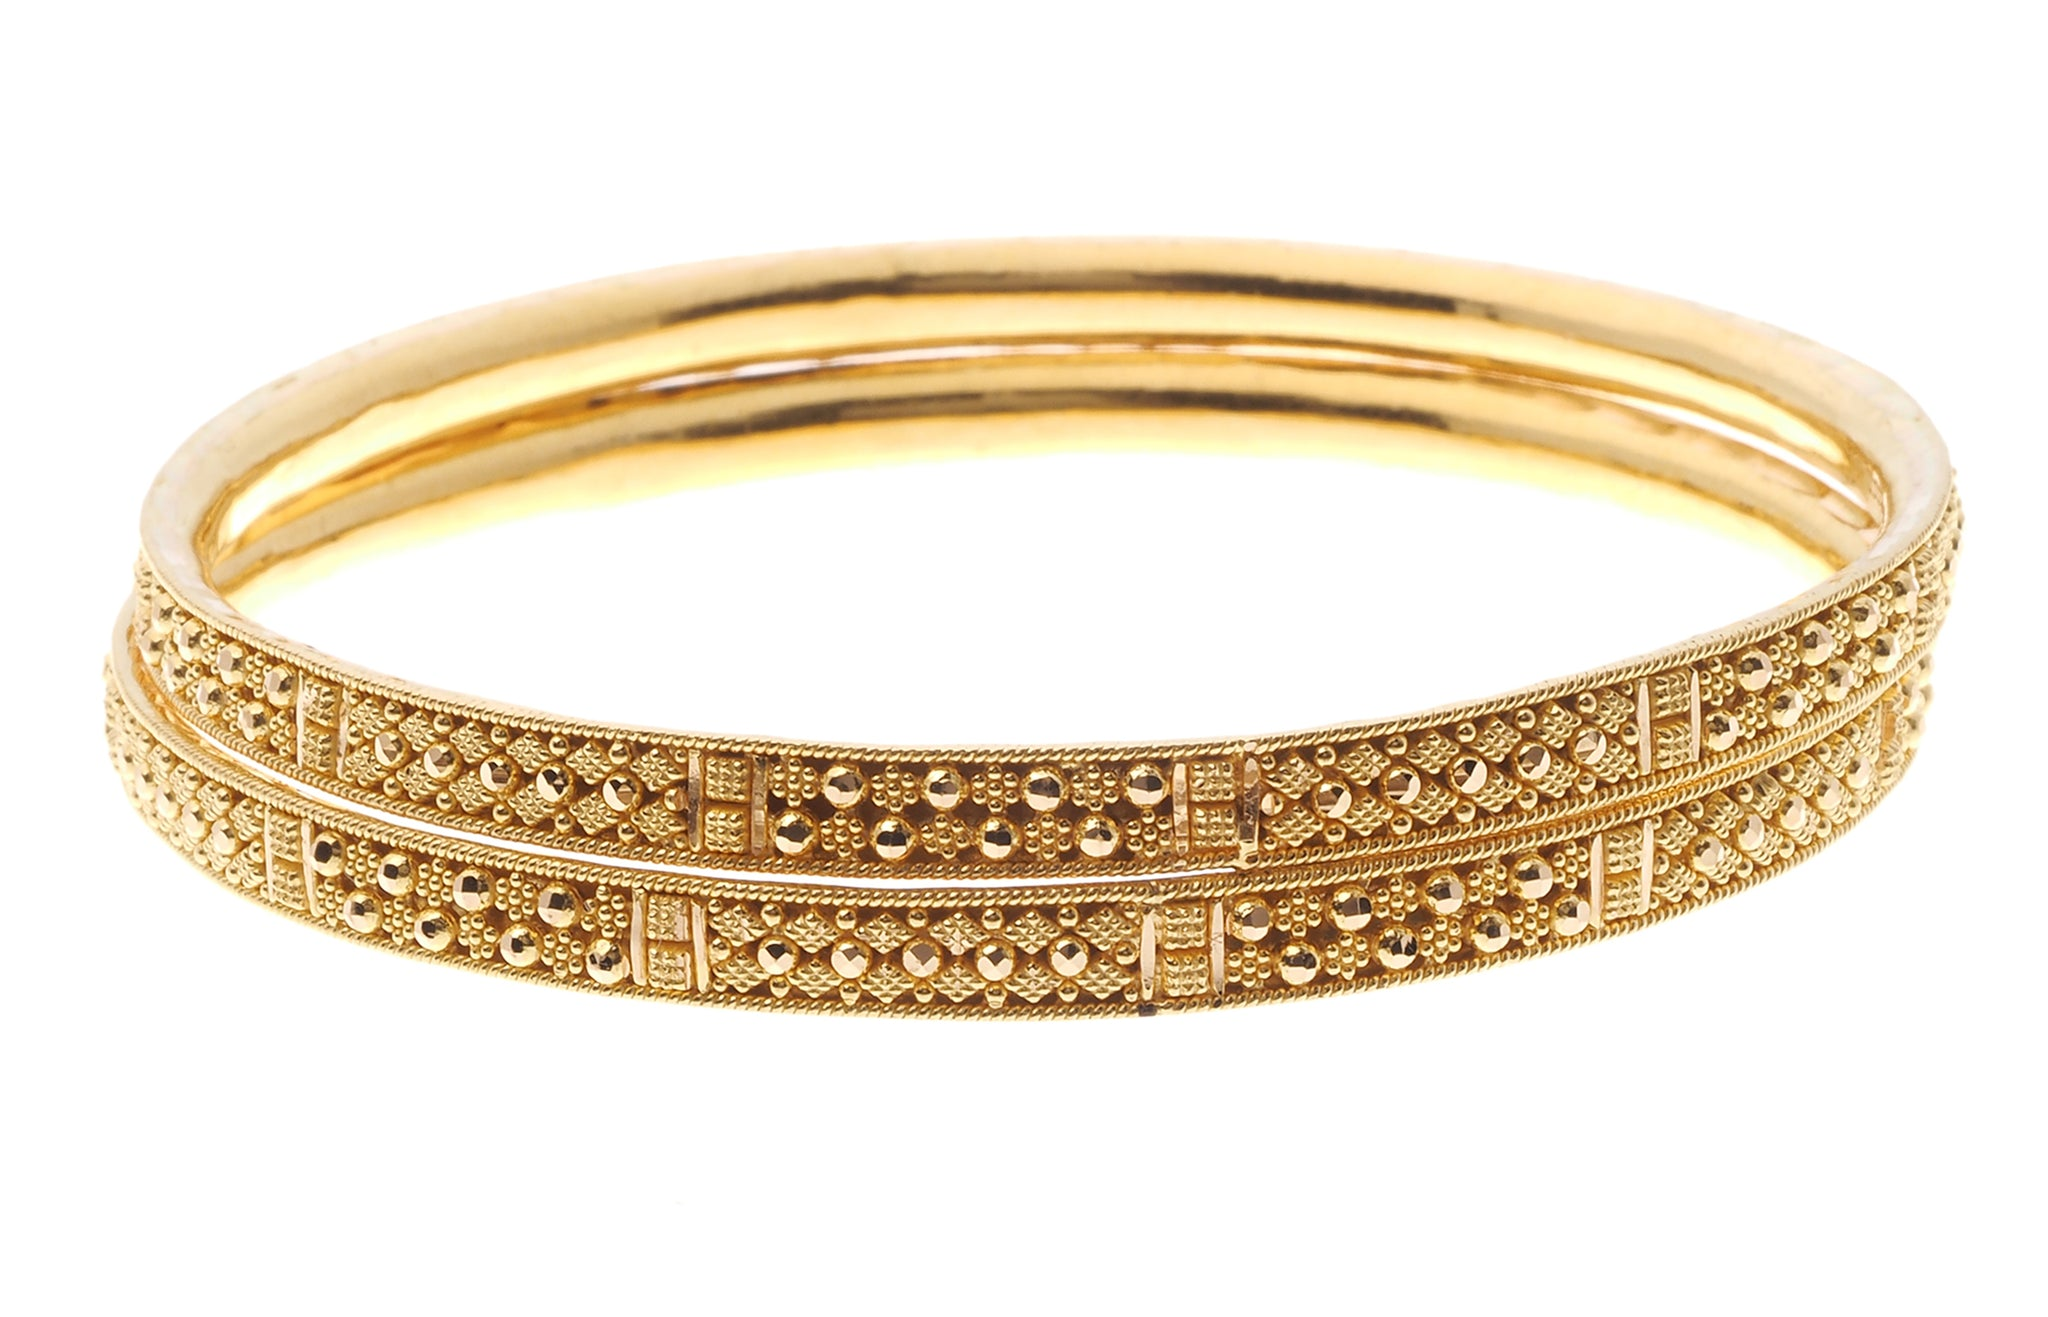 22ct Gold Filigree Design Bangles with Comfort Finish (B-6572)